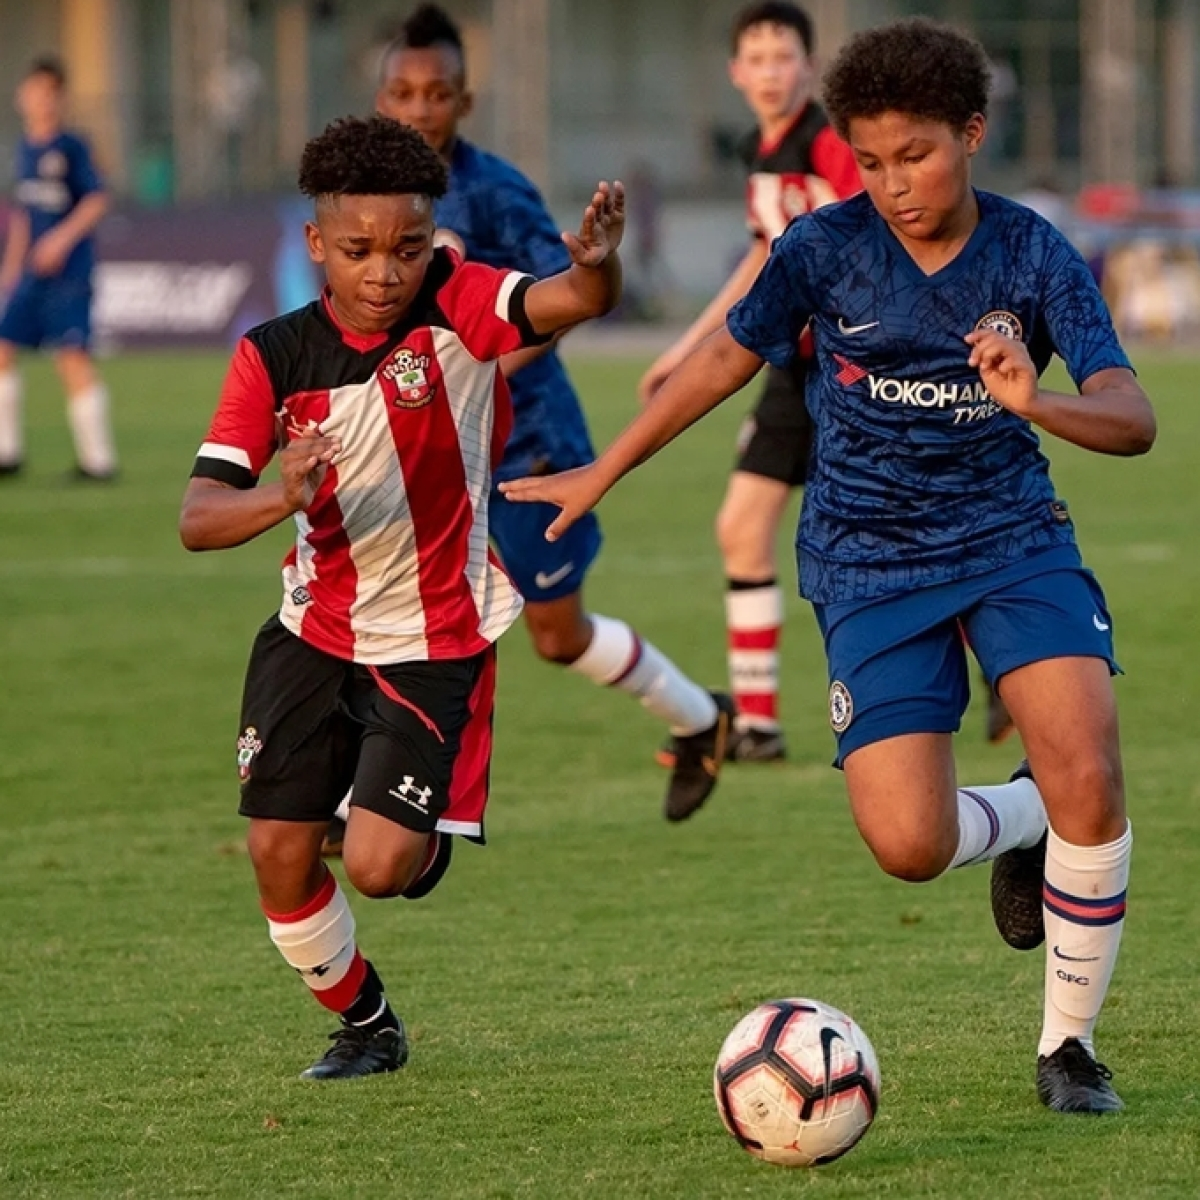 PL-ISL Next Generation Cup 2020: Chelsea cruise over Southampton